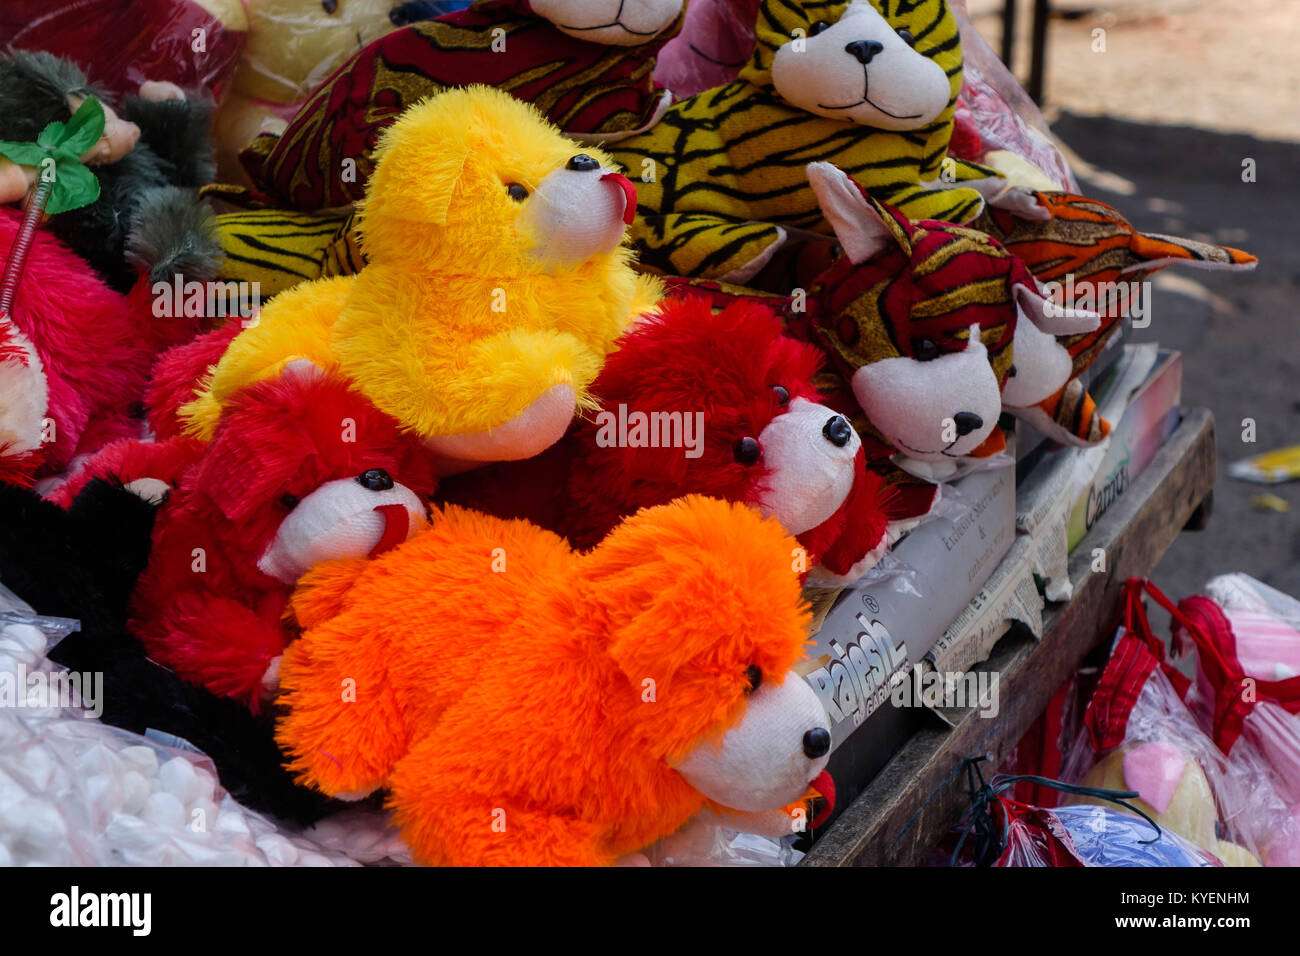 Stuffed fabric colorful toy dogs in local market - Stock Image